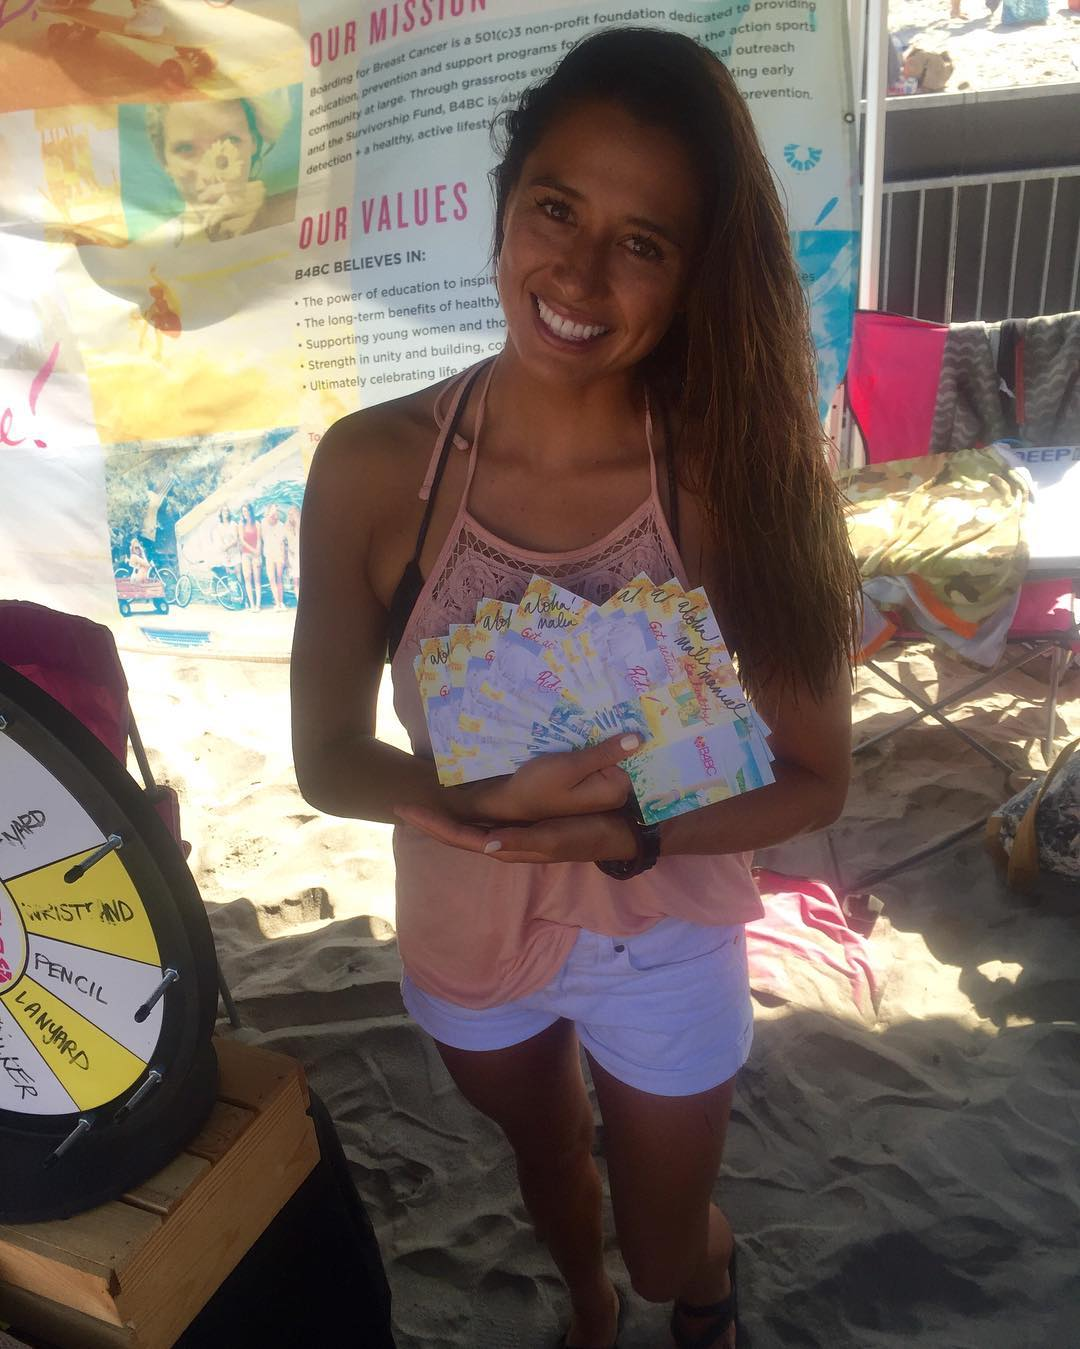 Our girl @maliamanuel came by yesterday and signed some goodies! Swing by the B4BC booth today and be one of the lucky few to pick up an autograph. Don't forget to root on Malia as she continues in the final day of the @supergirlpro in Oceanside!